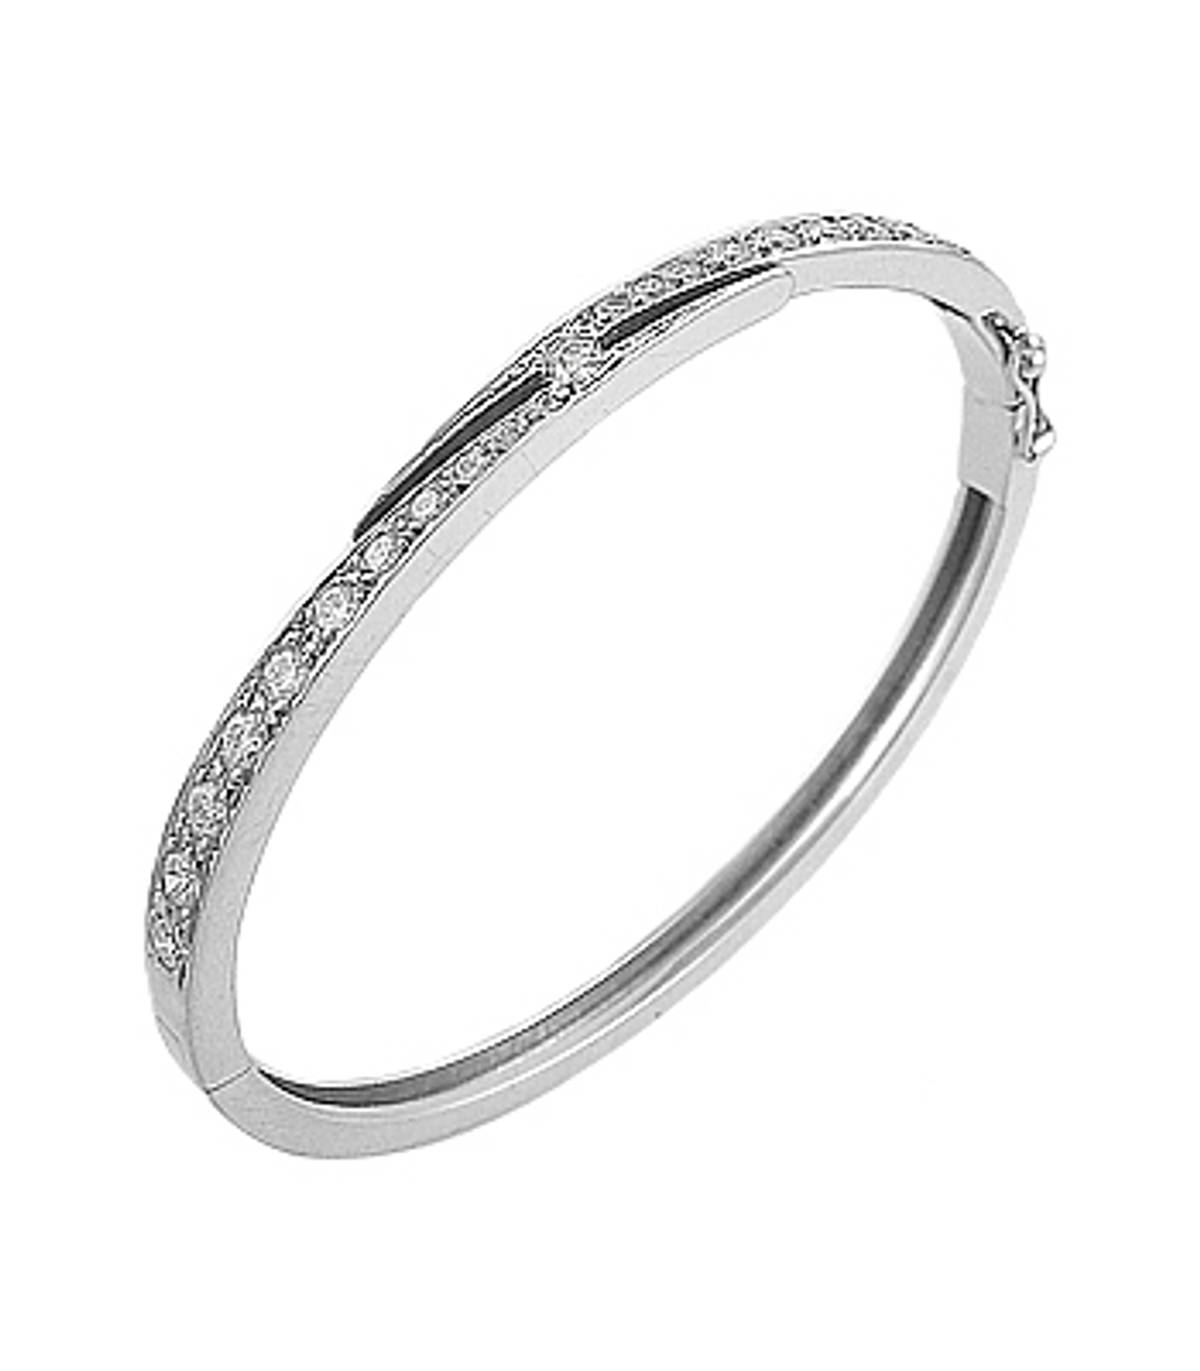 18k white gold graduated brilliant cut diamond bangle  Total diamond weight 1.34cts Made in Ireland